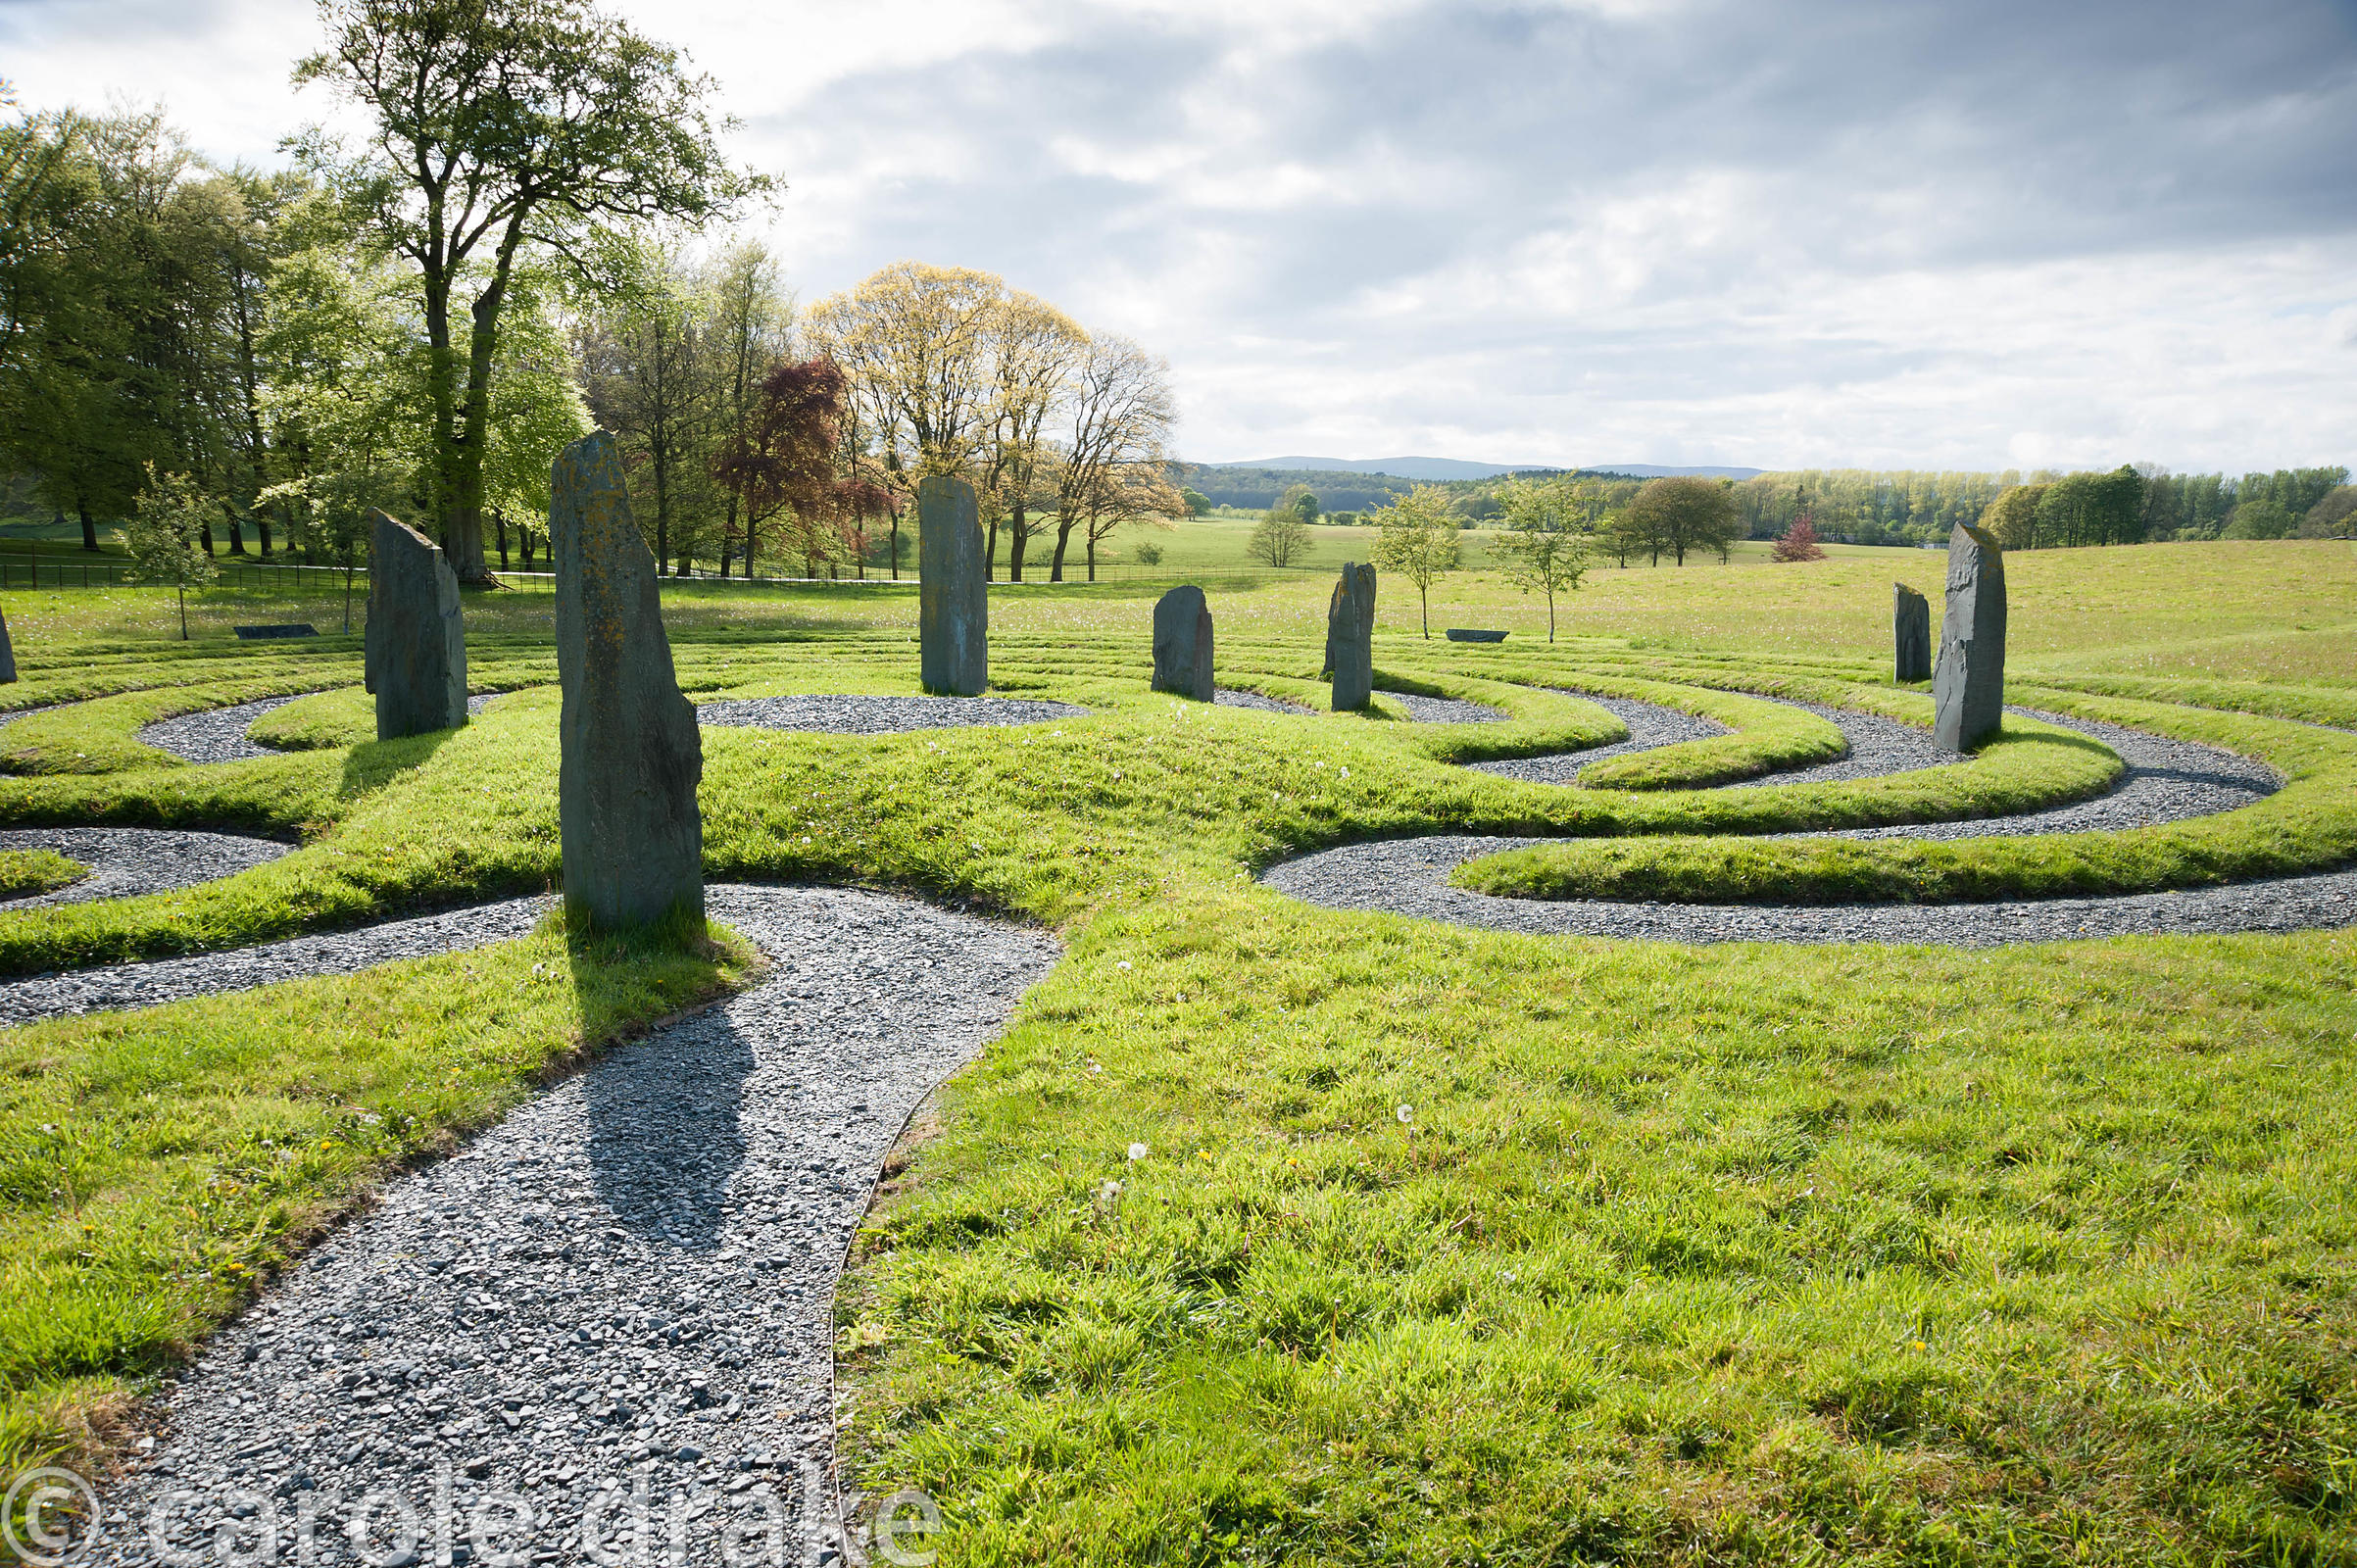 Labyrinth inspired by a Hindi temple design, with standing slate stones. Holker Hall, Grange over Sands, Cumbria, UK